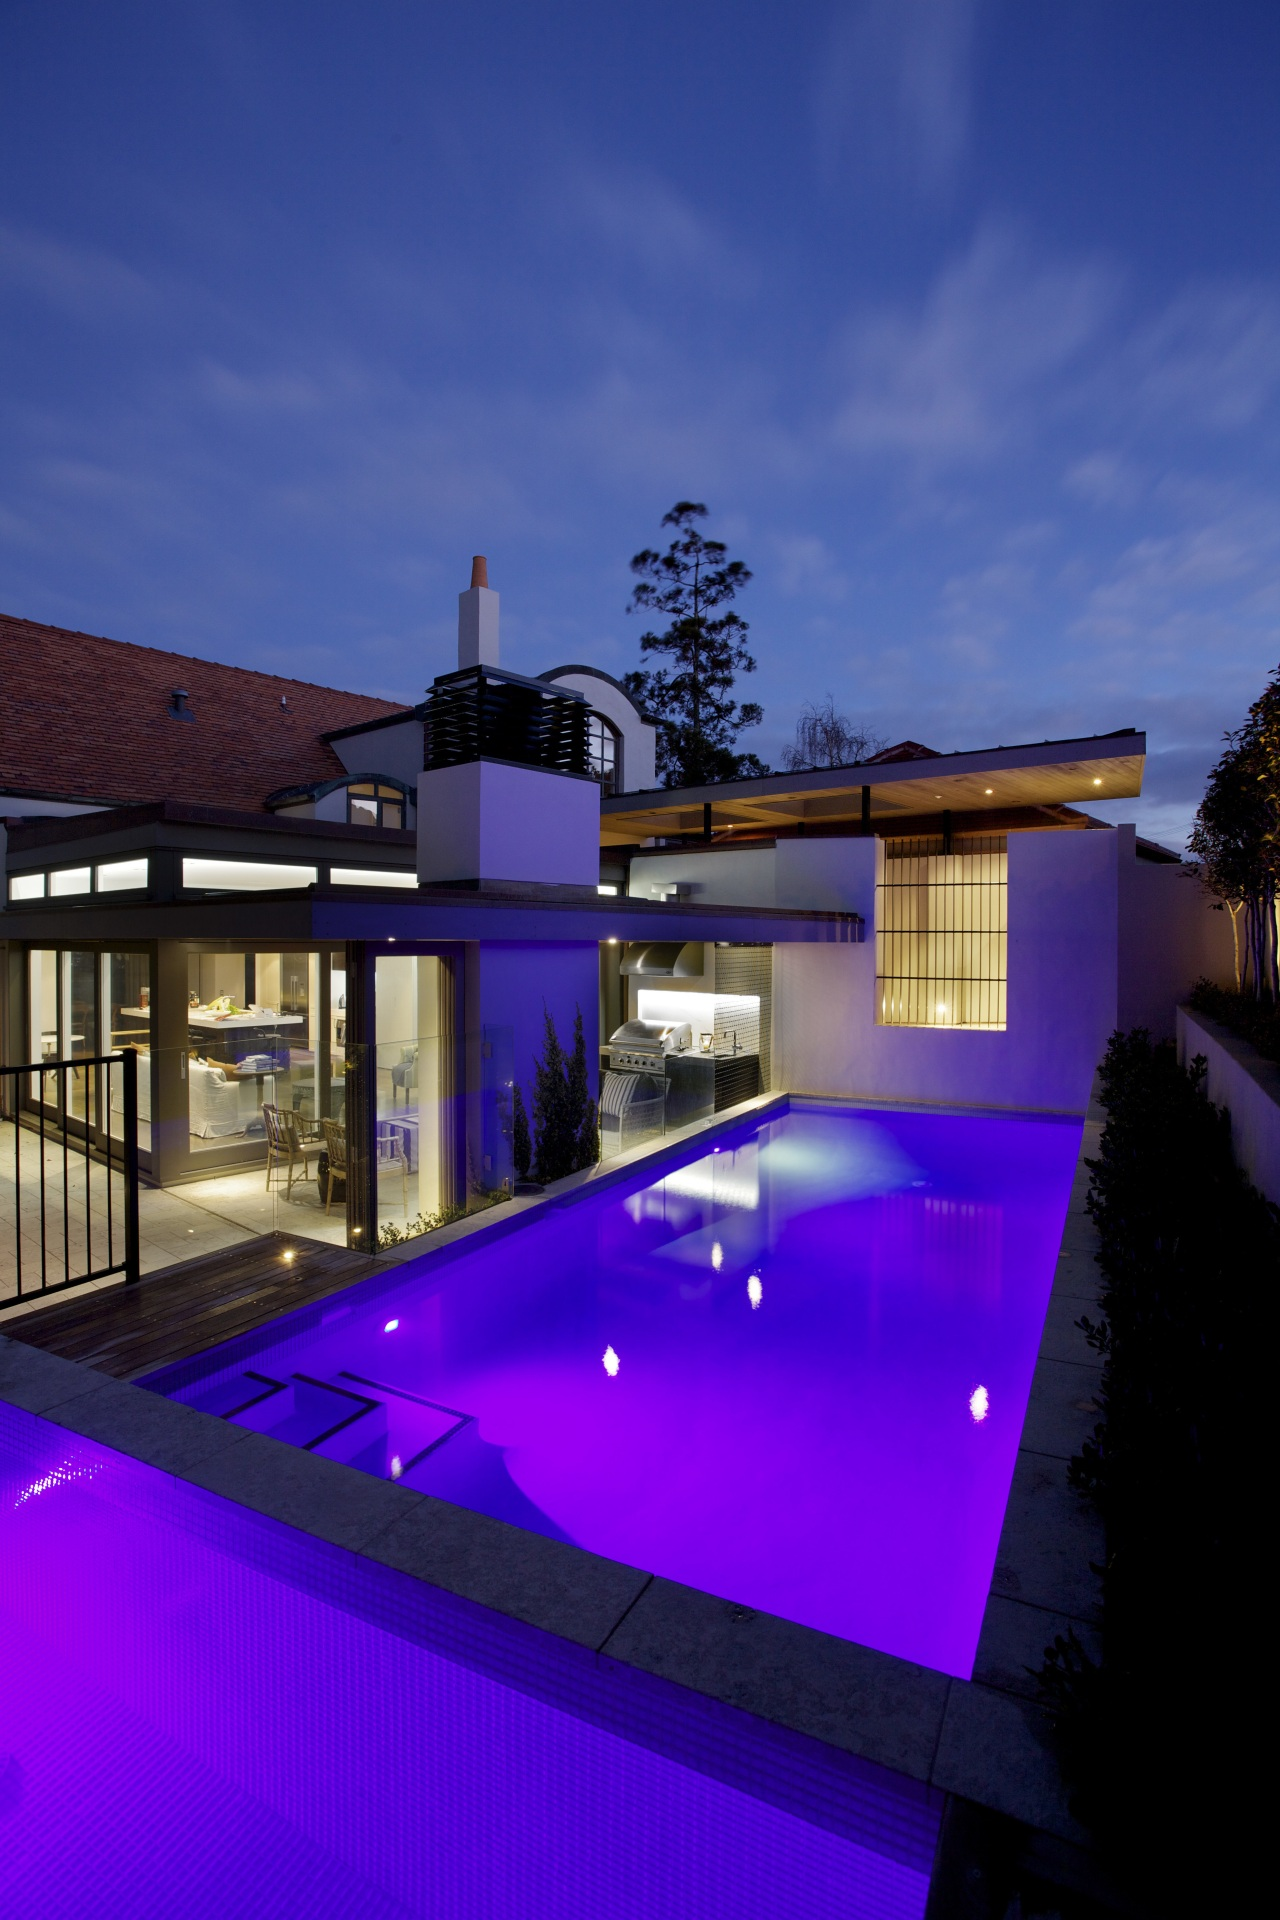 Designed by architect Jennifer Hanson of A-Design Studio, architecture, daylighting, estate, facade, home, house, lighting, property, real estate, reflection, residential area, sky, swimming pool, blue